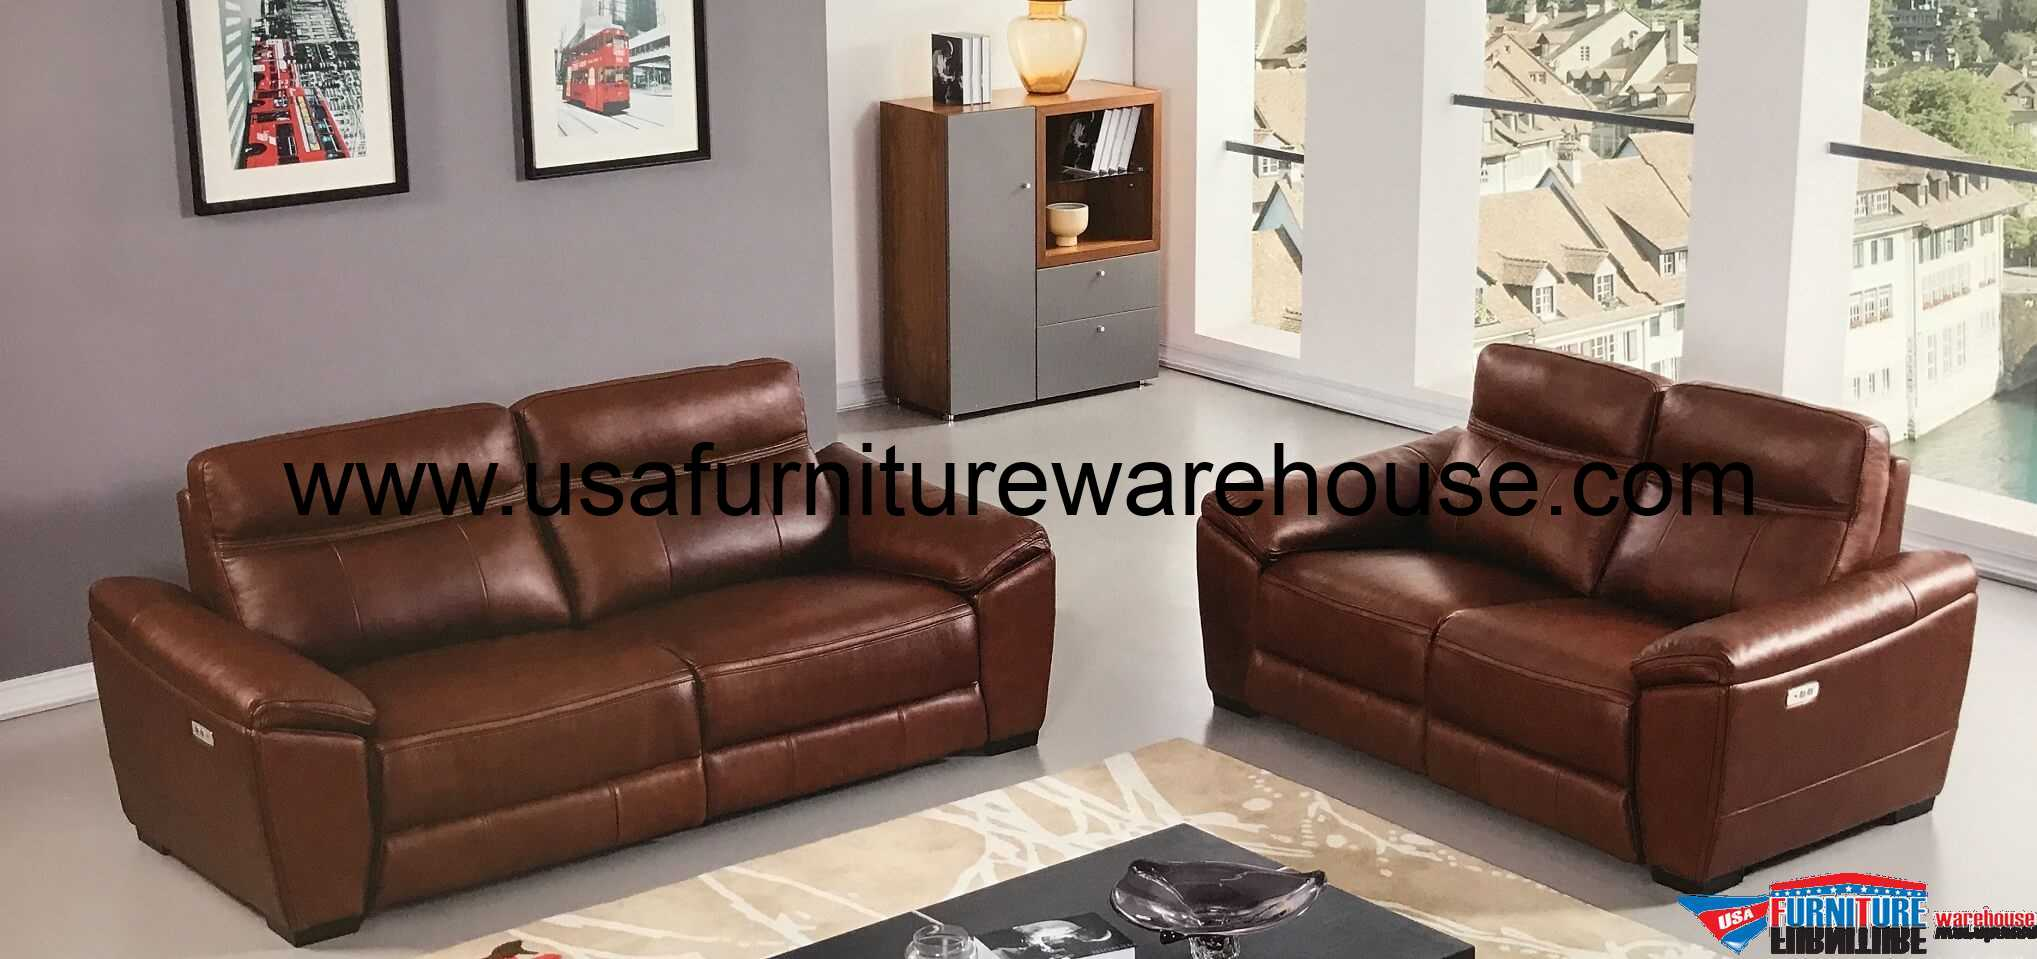 Sofa Set Offer Up Forma Full Italian Brown Leather Power Recliner Loveseat